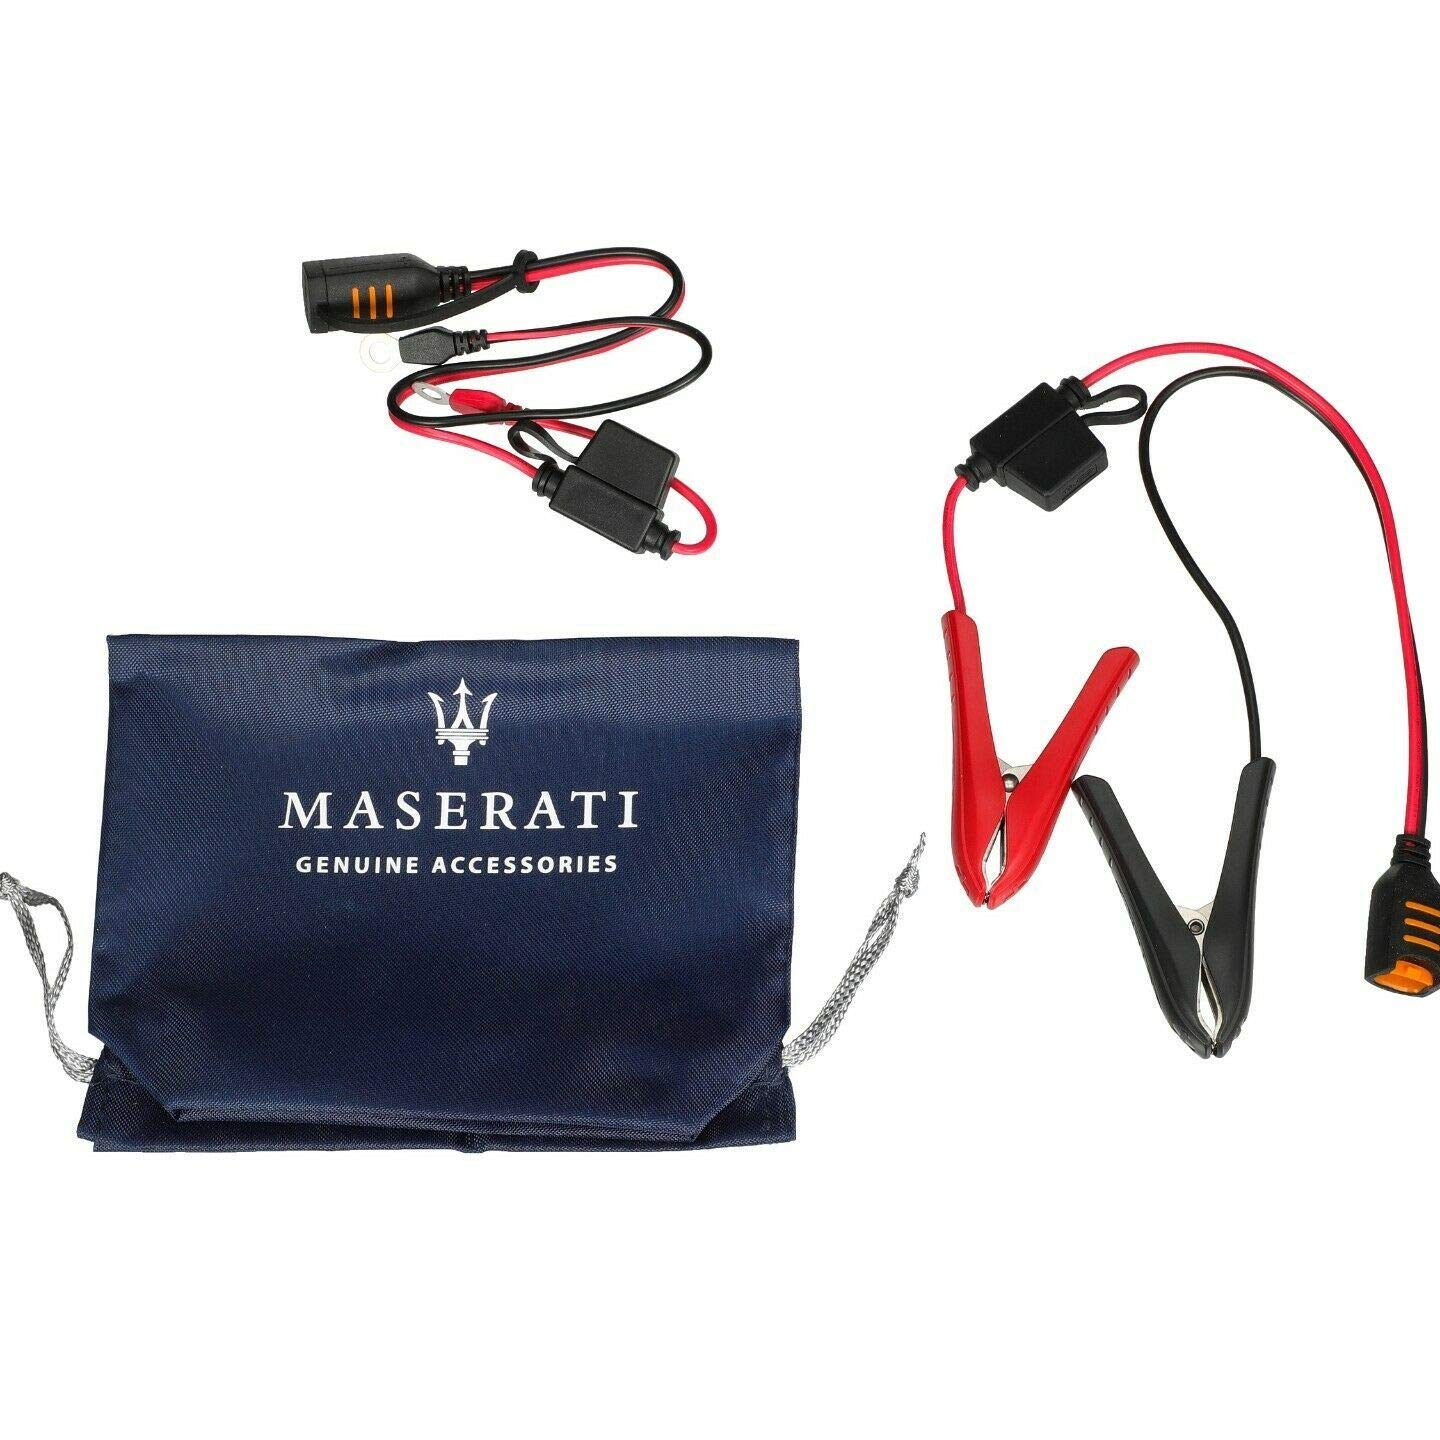 Genuine OEM Battery Charger Tender Compatible w/Maserati 0940000275 Quick Delivery by $/Reliable